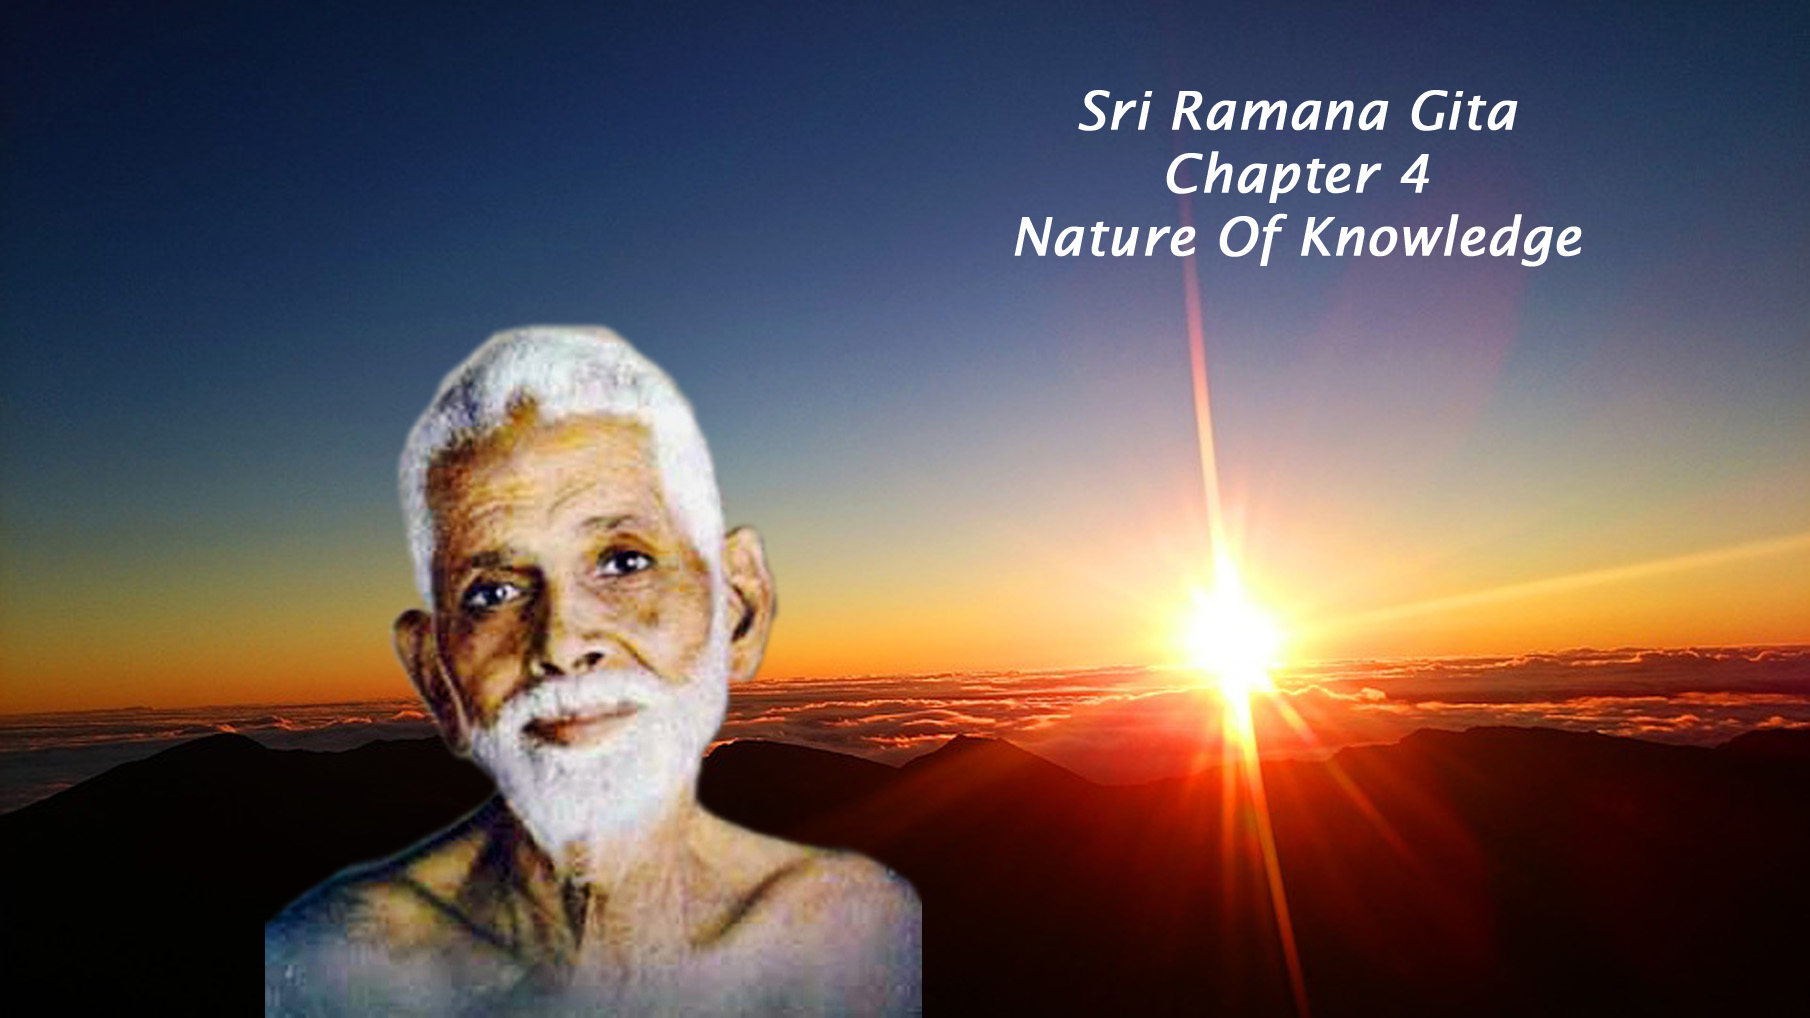 Ramana Gita - Chapter 4 - Nature of Knowledge